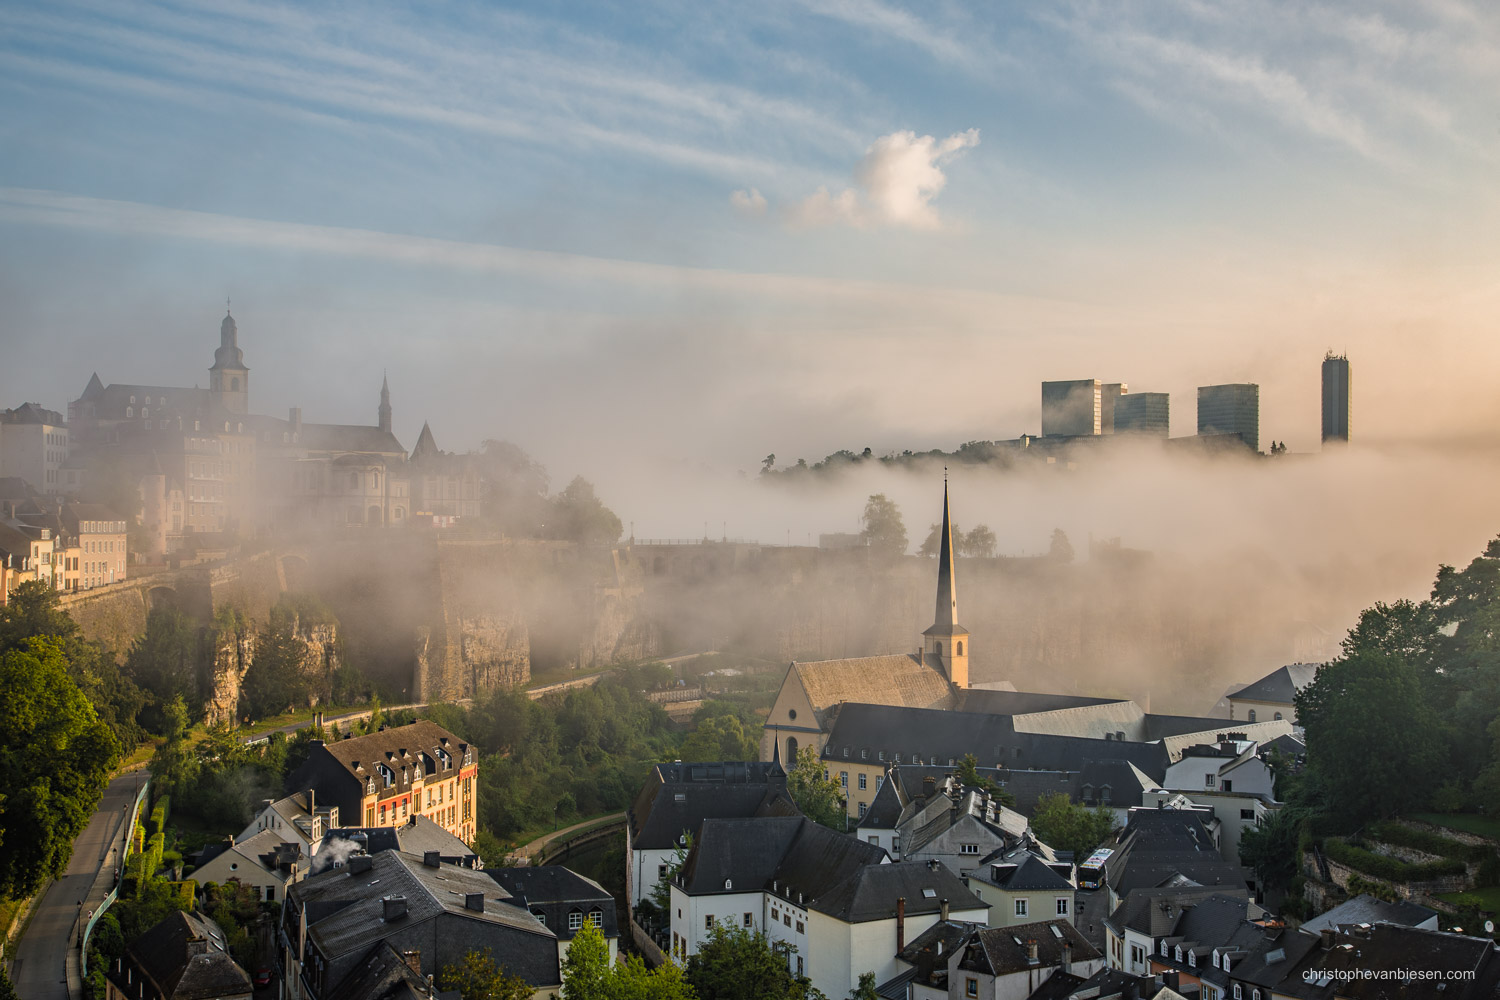 Photography Workshop in Luxembourg - Fog lifts as the sun rises over Luxembourg City's Grund on a summer day - Dawn above the Sea of Fog - Photography by Christophe Van Biesen - Landscape and Travel Photographer